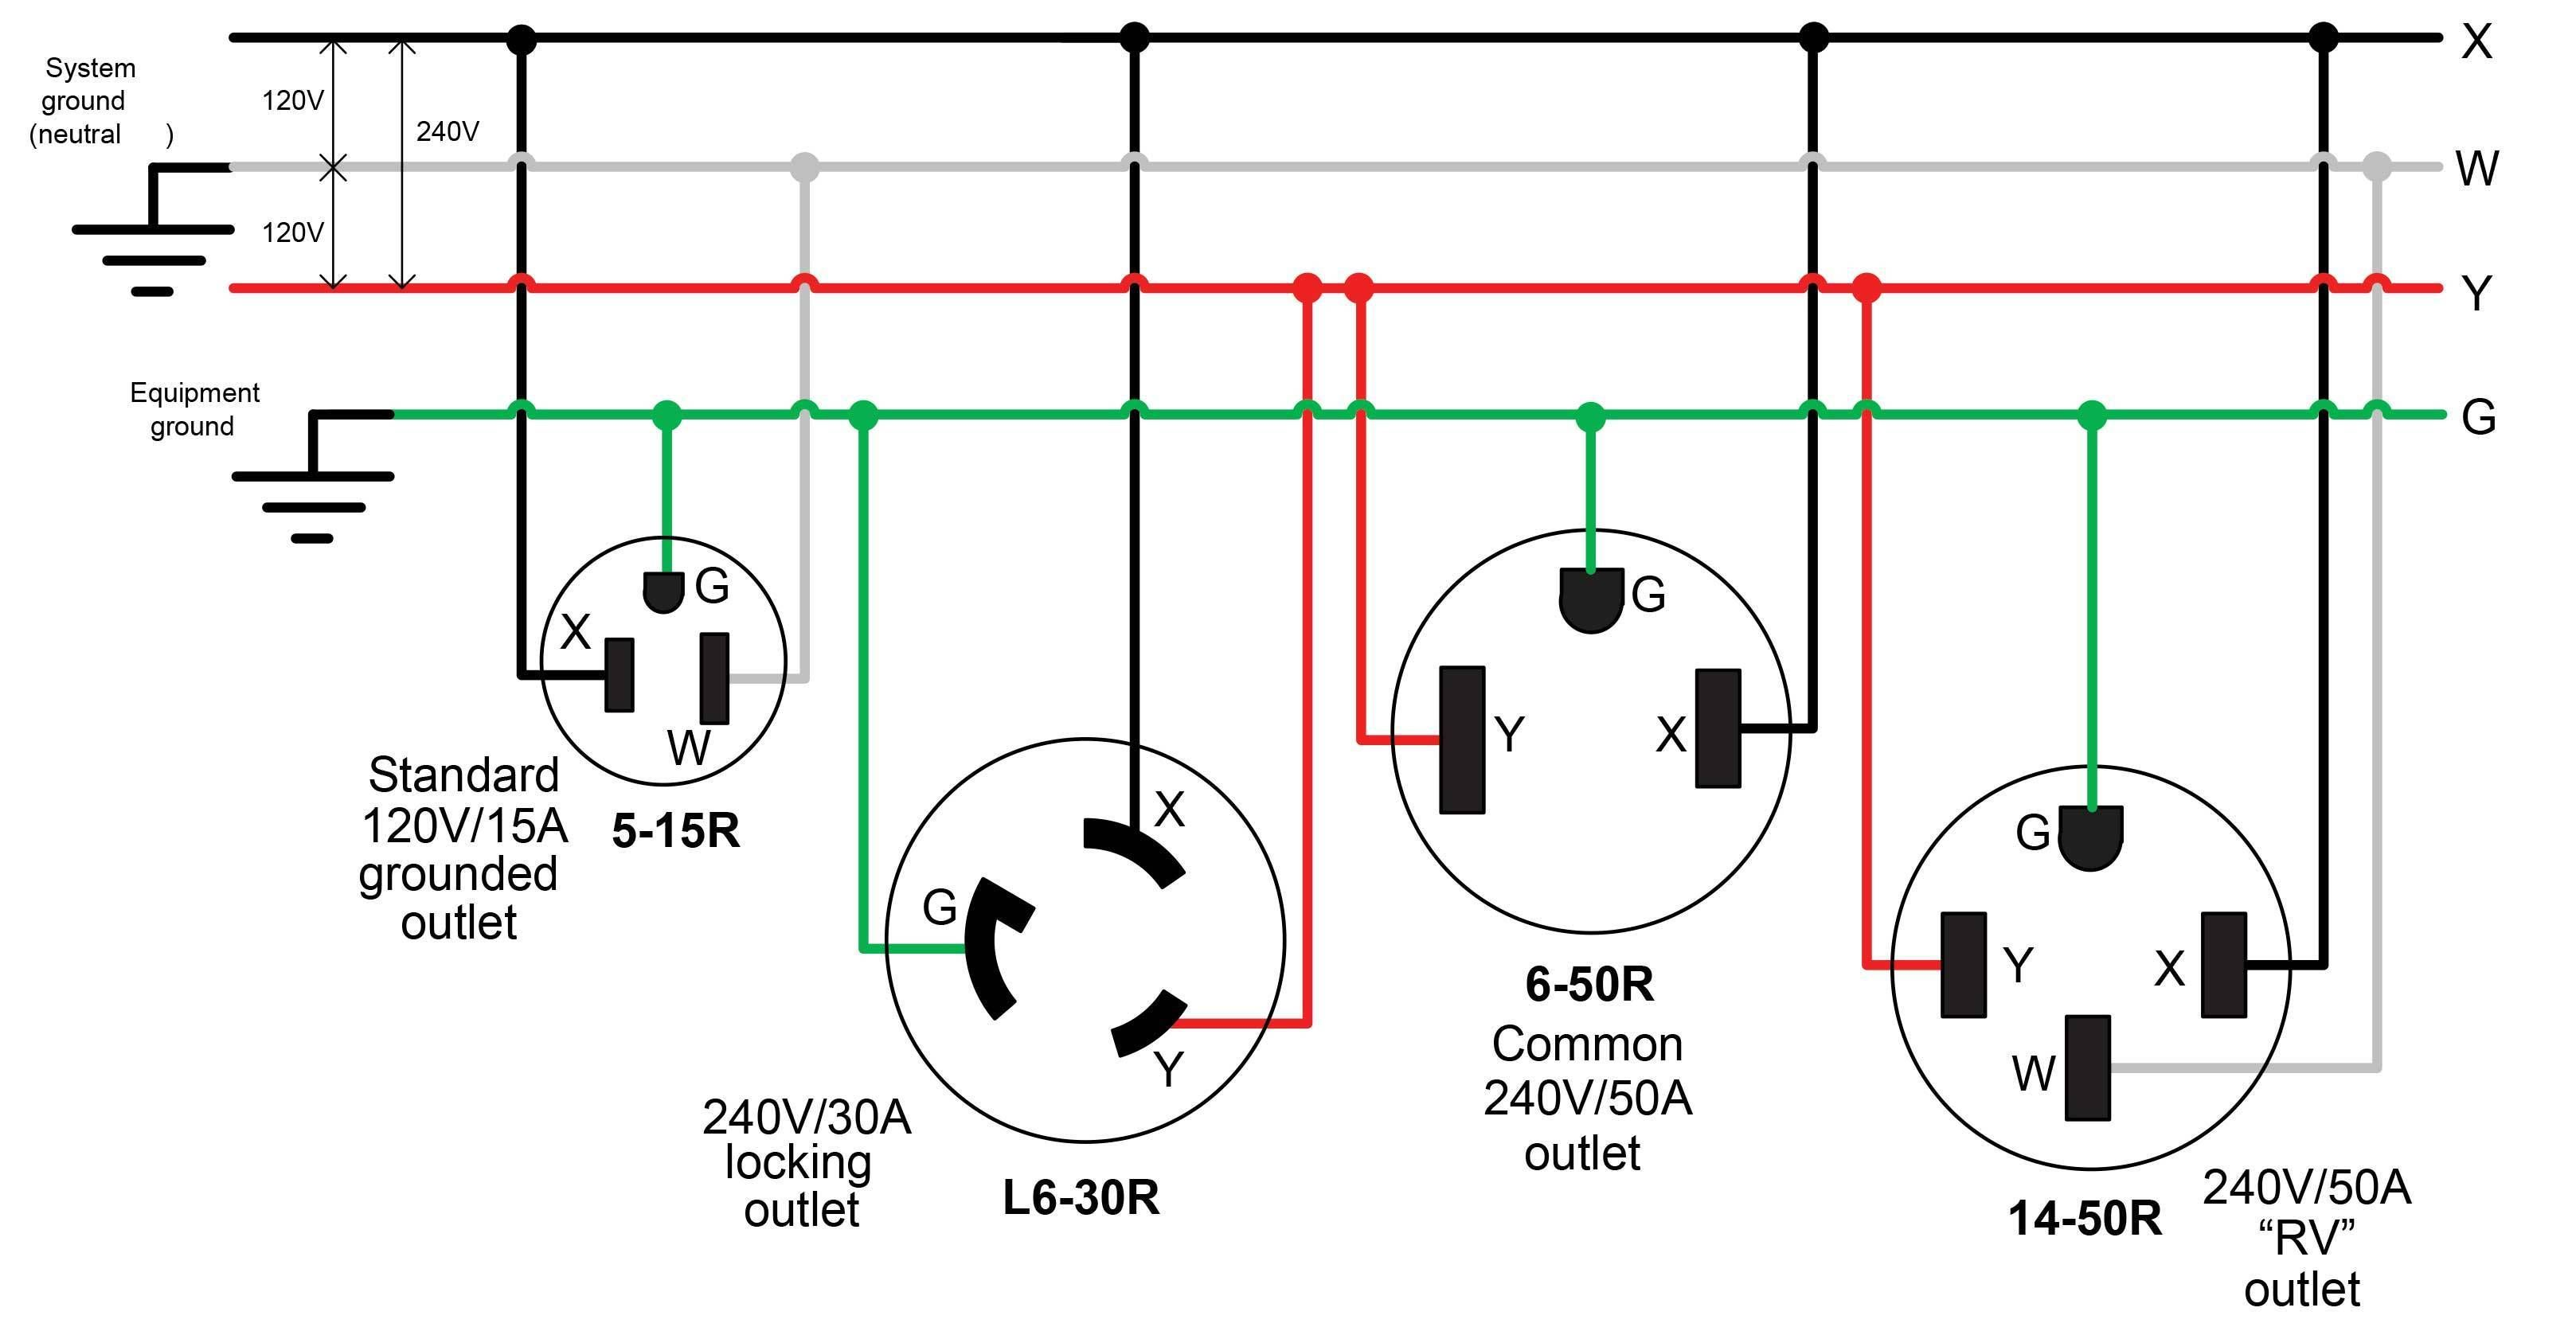 30 amp outlet diagram wiring diagram database 30 amp dryer receptacle diagram [ 3235 x 1672 Pixel ]